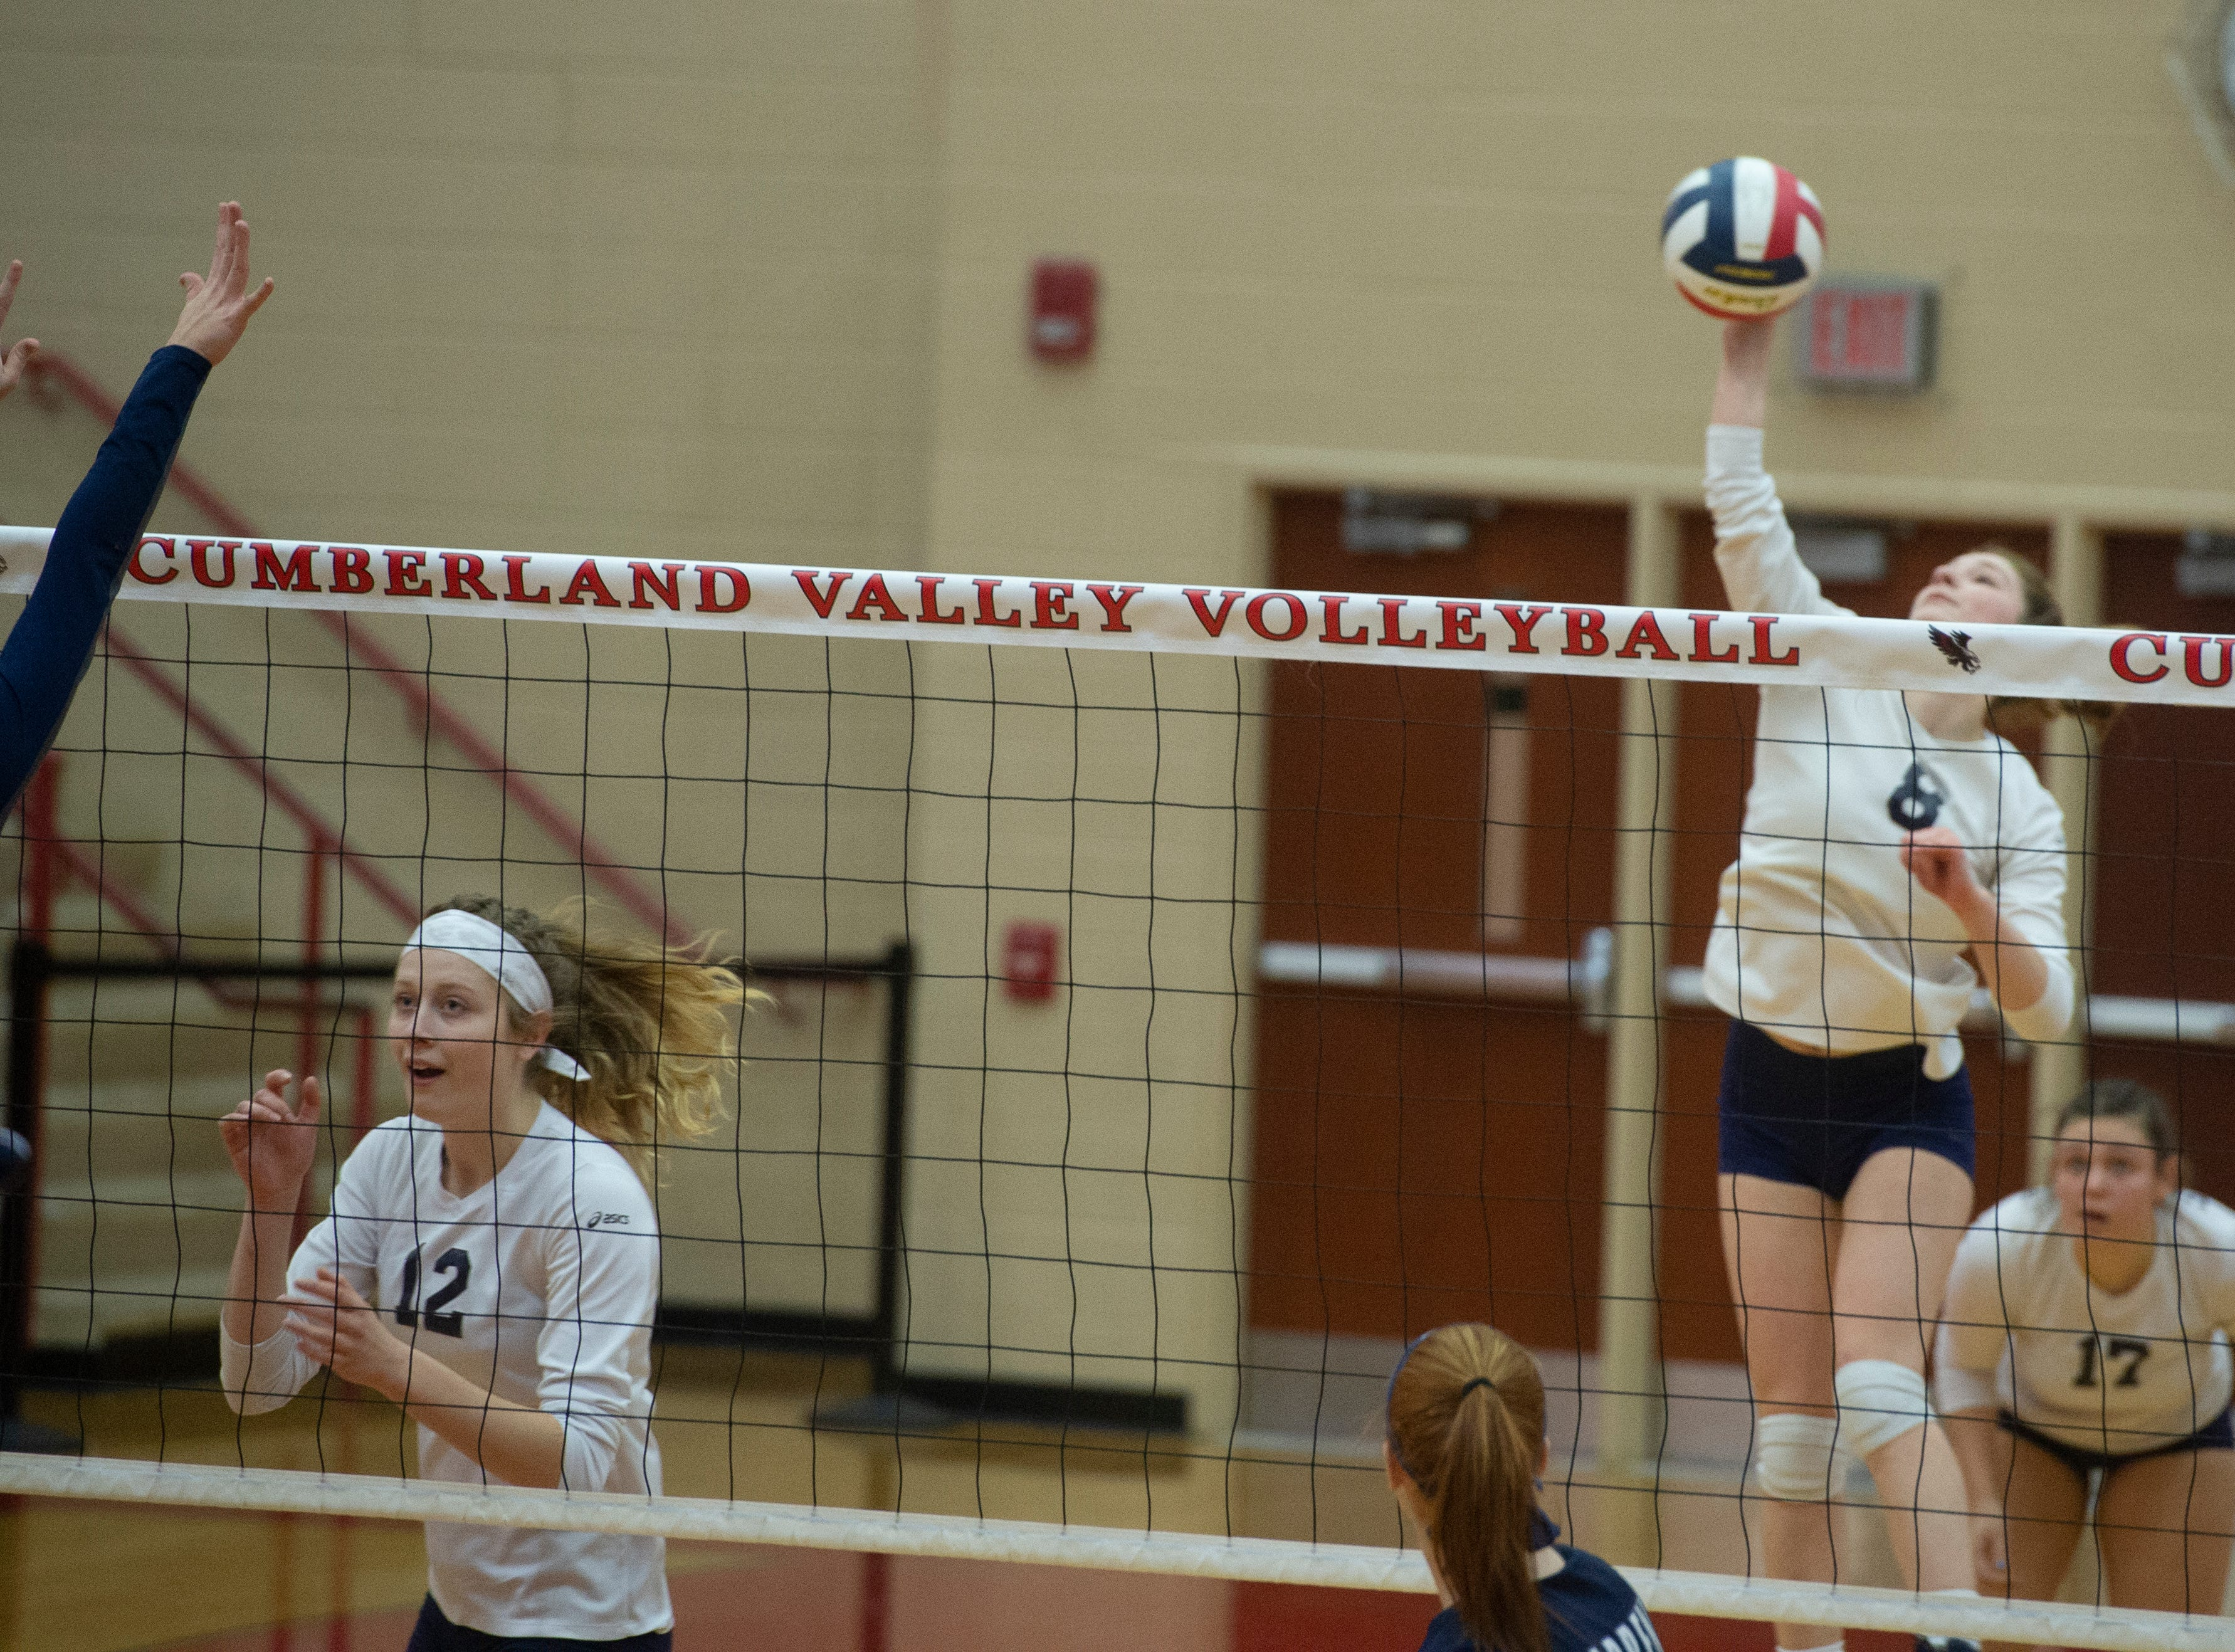 West York's Julia Rill goes on the attack from the back row in Saturday's first game of the Bulldogs' 3-0 win in the PIAA Class 3A girls' volleyball championship.